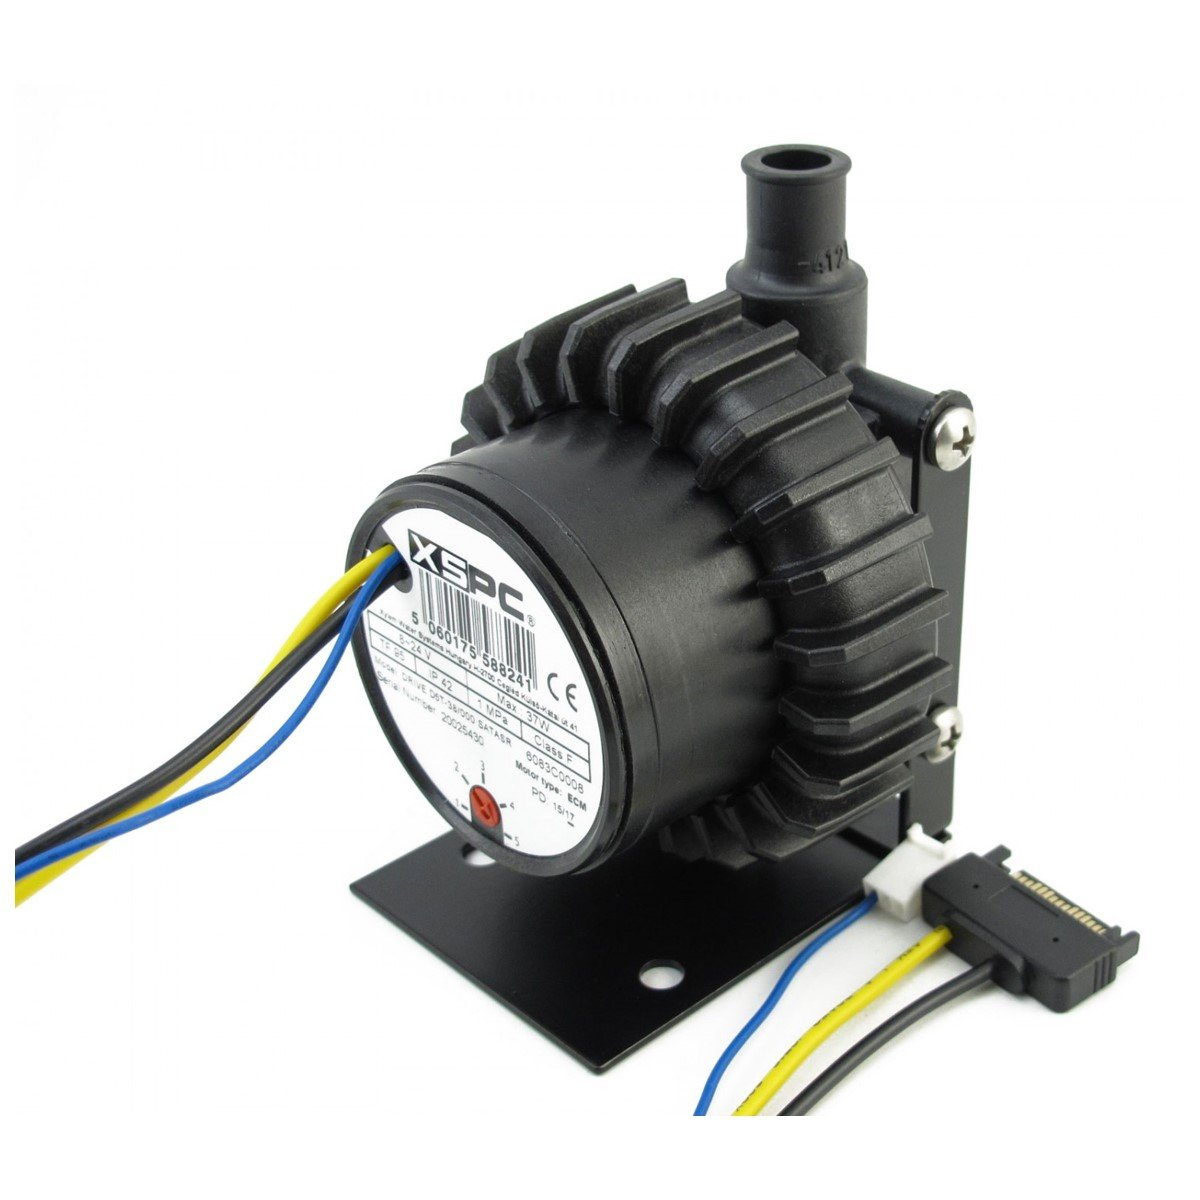 XSPC D5 Vario Pump with SATA power and Front Cover (1/2 Barbs)